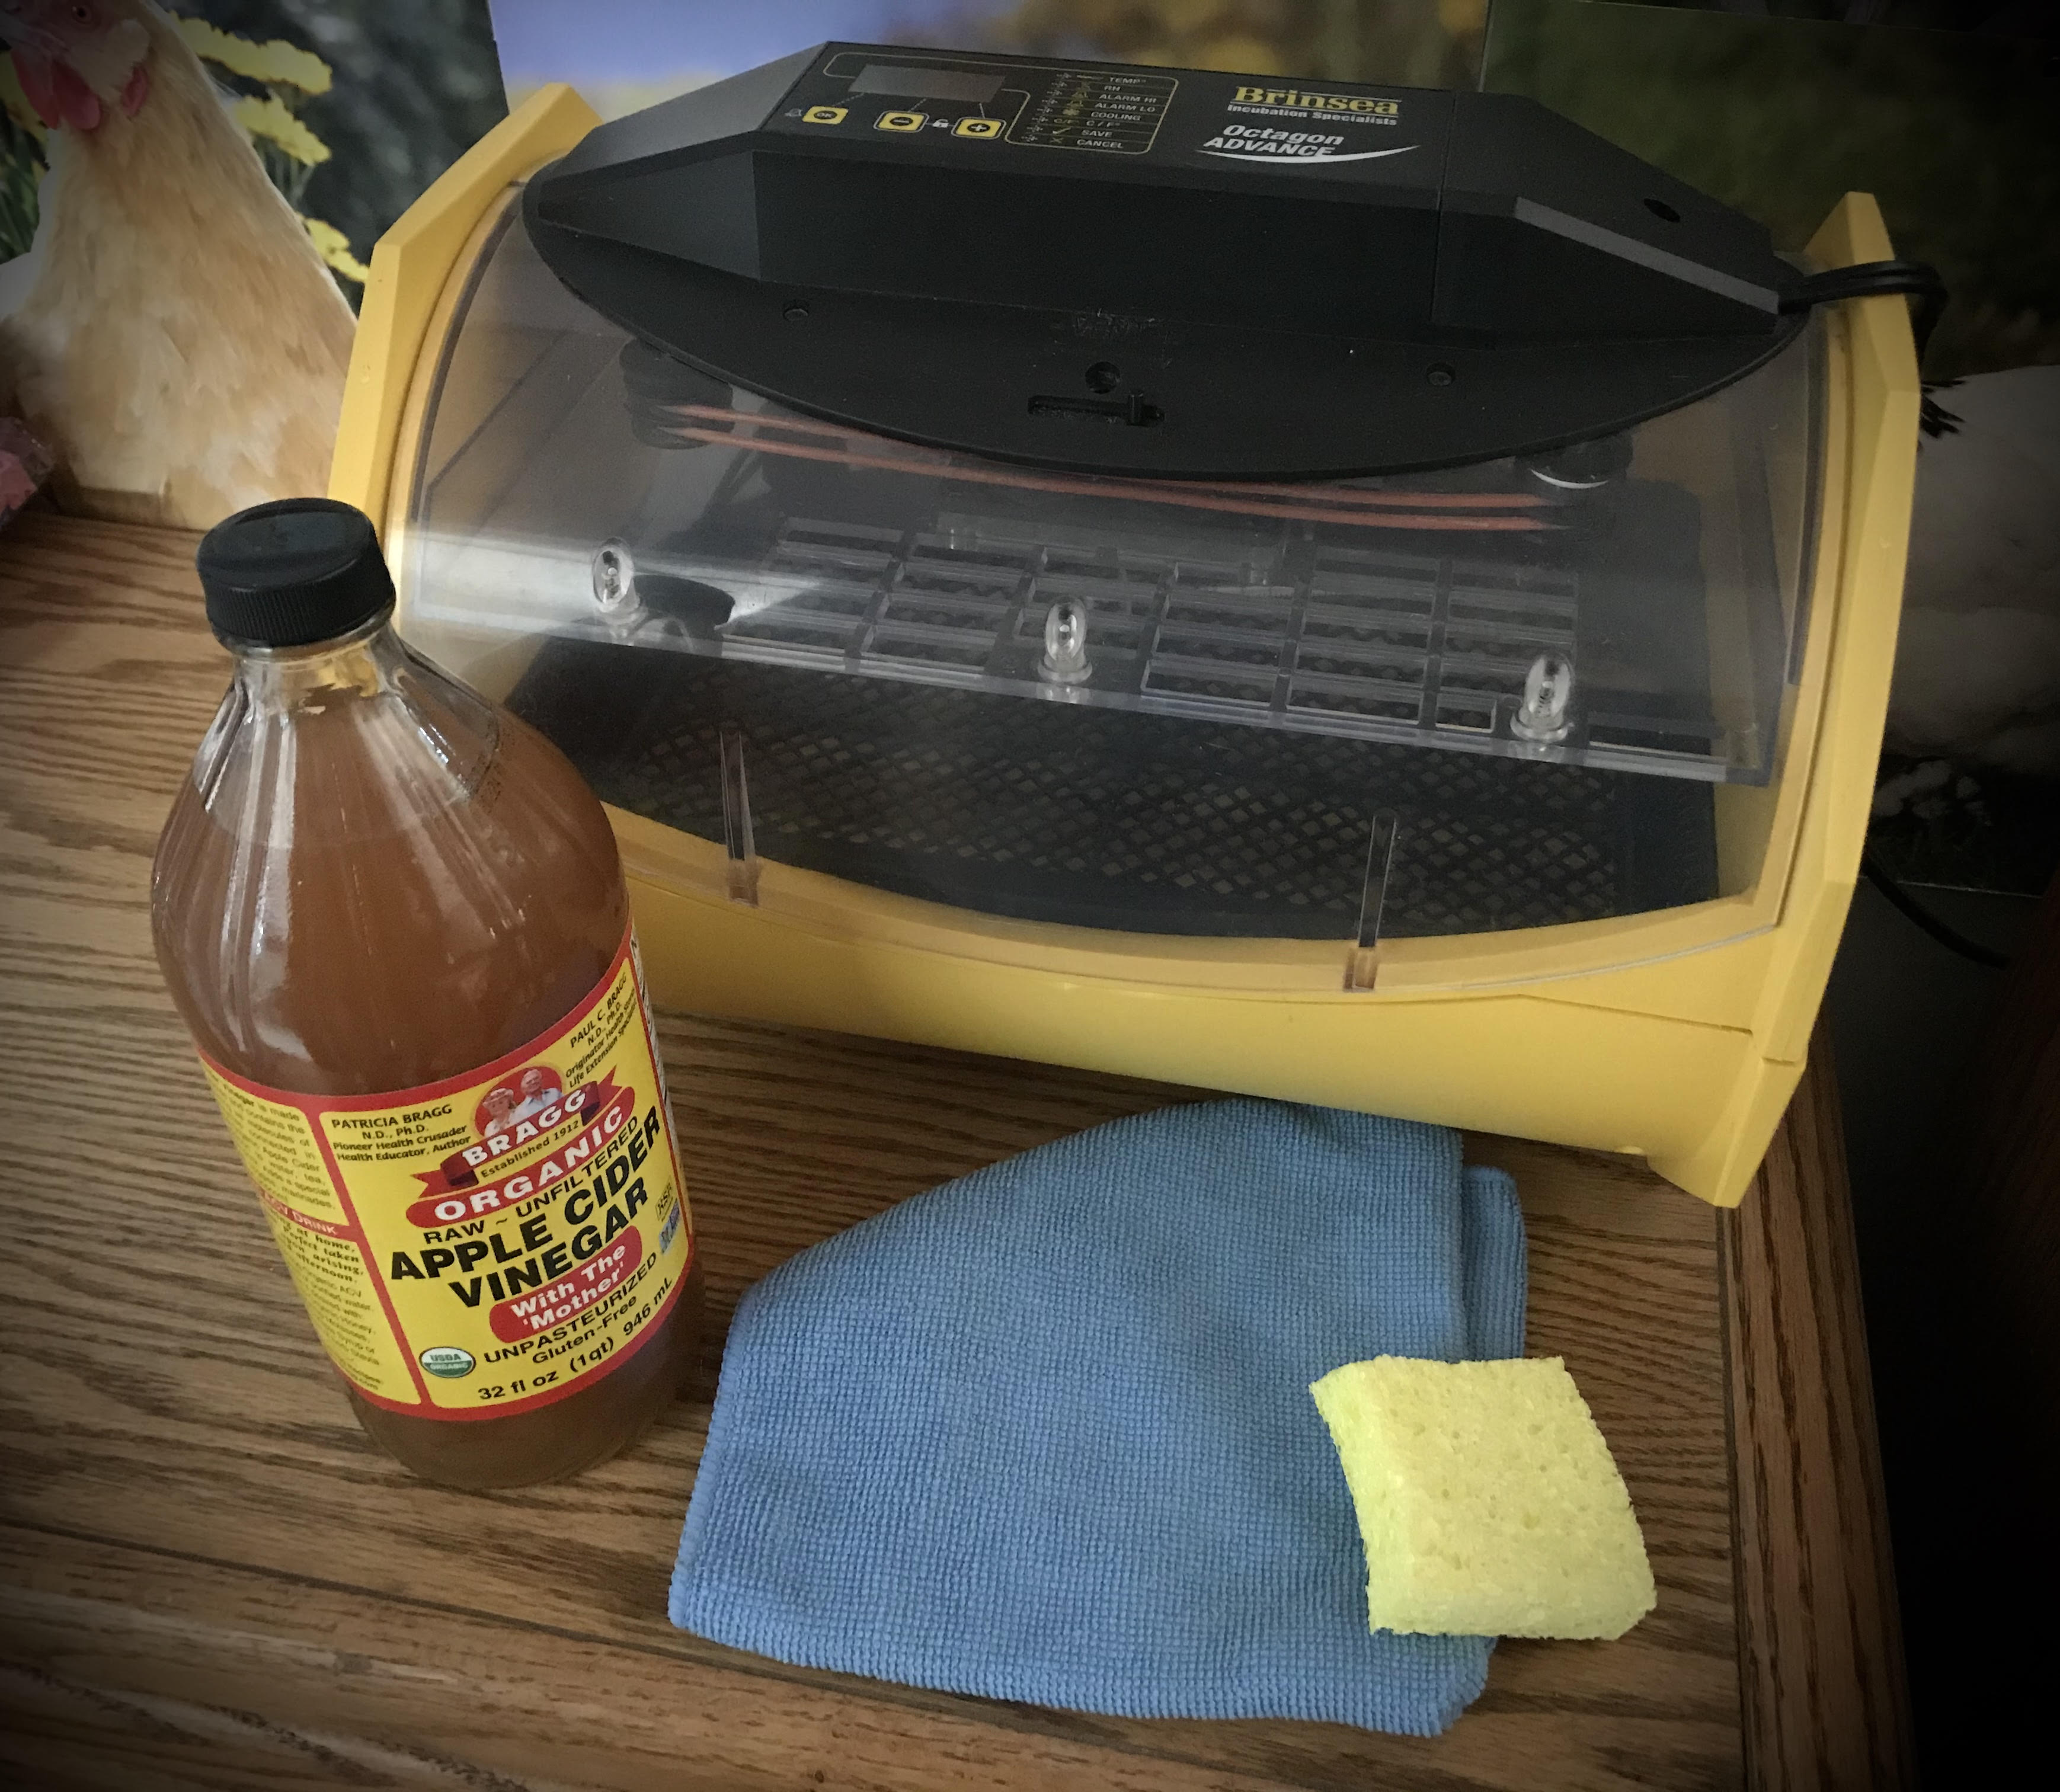 Clean your incubator with ACV, apple cider vinegar